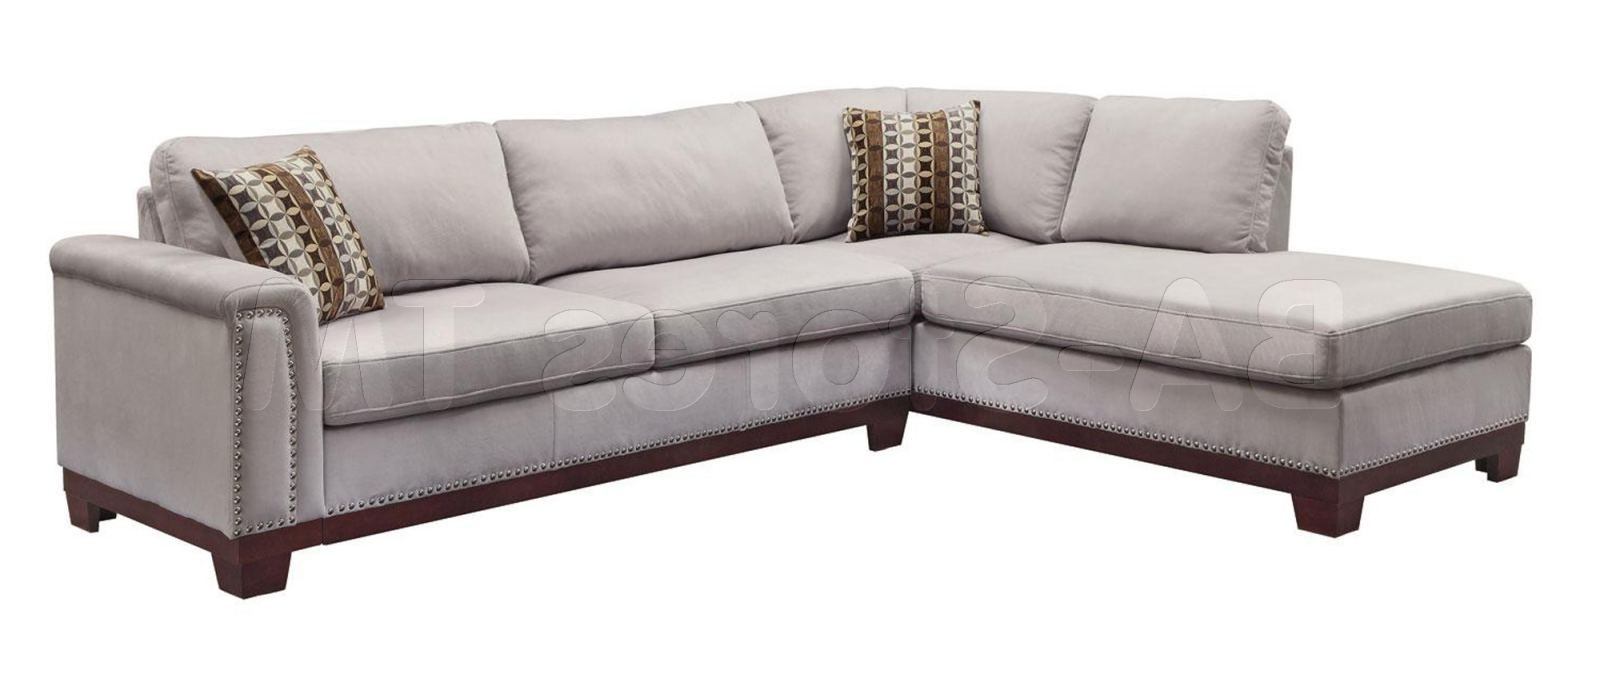 Fashionable Nailhead Trim Sectional Sofa #6 Click To Enlarge For Sectional Sofas With Nailheads (View 5 of 20)